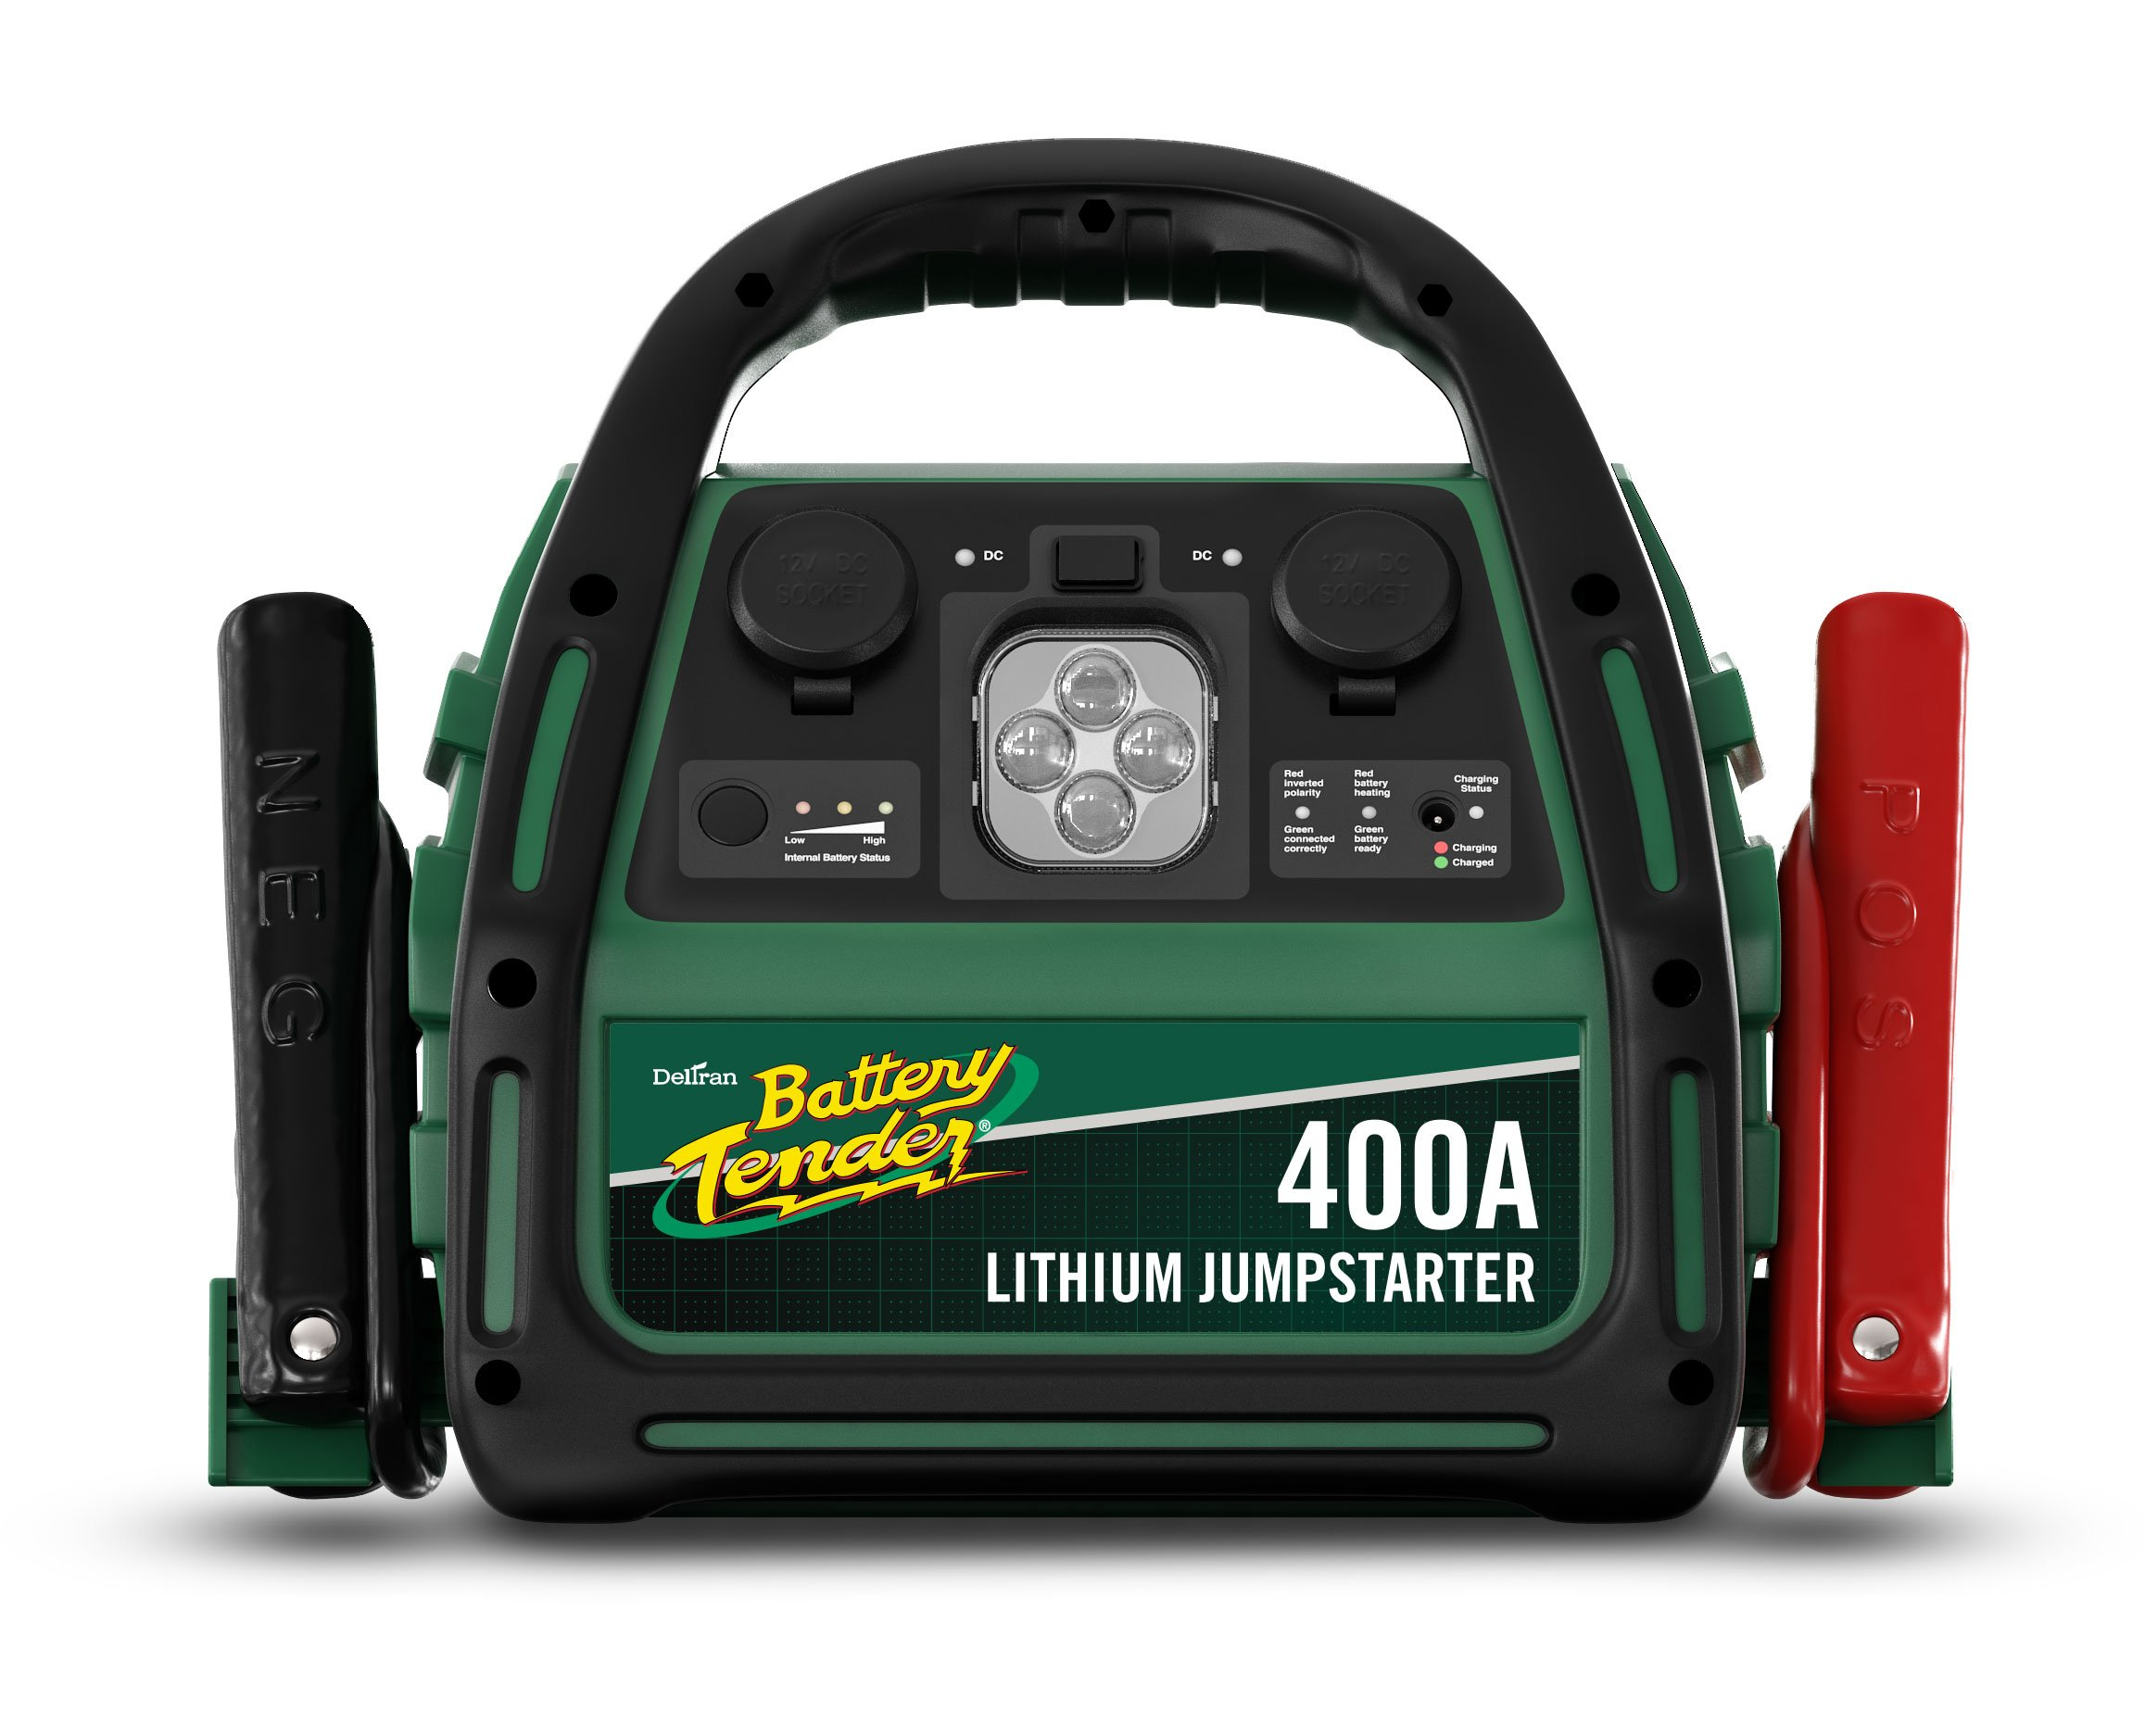 400 Amp Lithium Ion Jump Starter can Start Your Dead Battery, It's Light Weight, Efficient in Charge and has 4X Longer Internal Battery Life